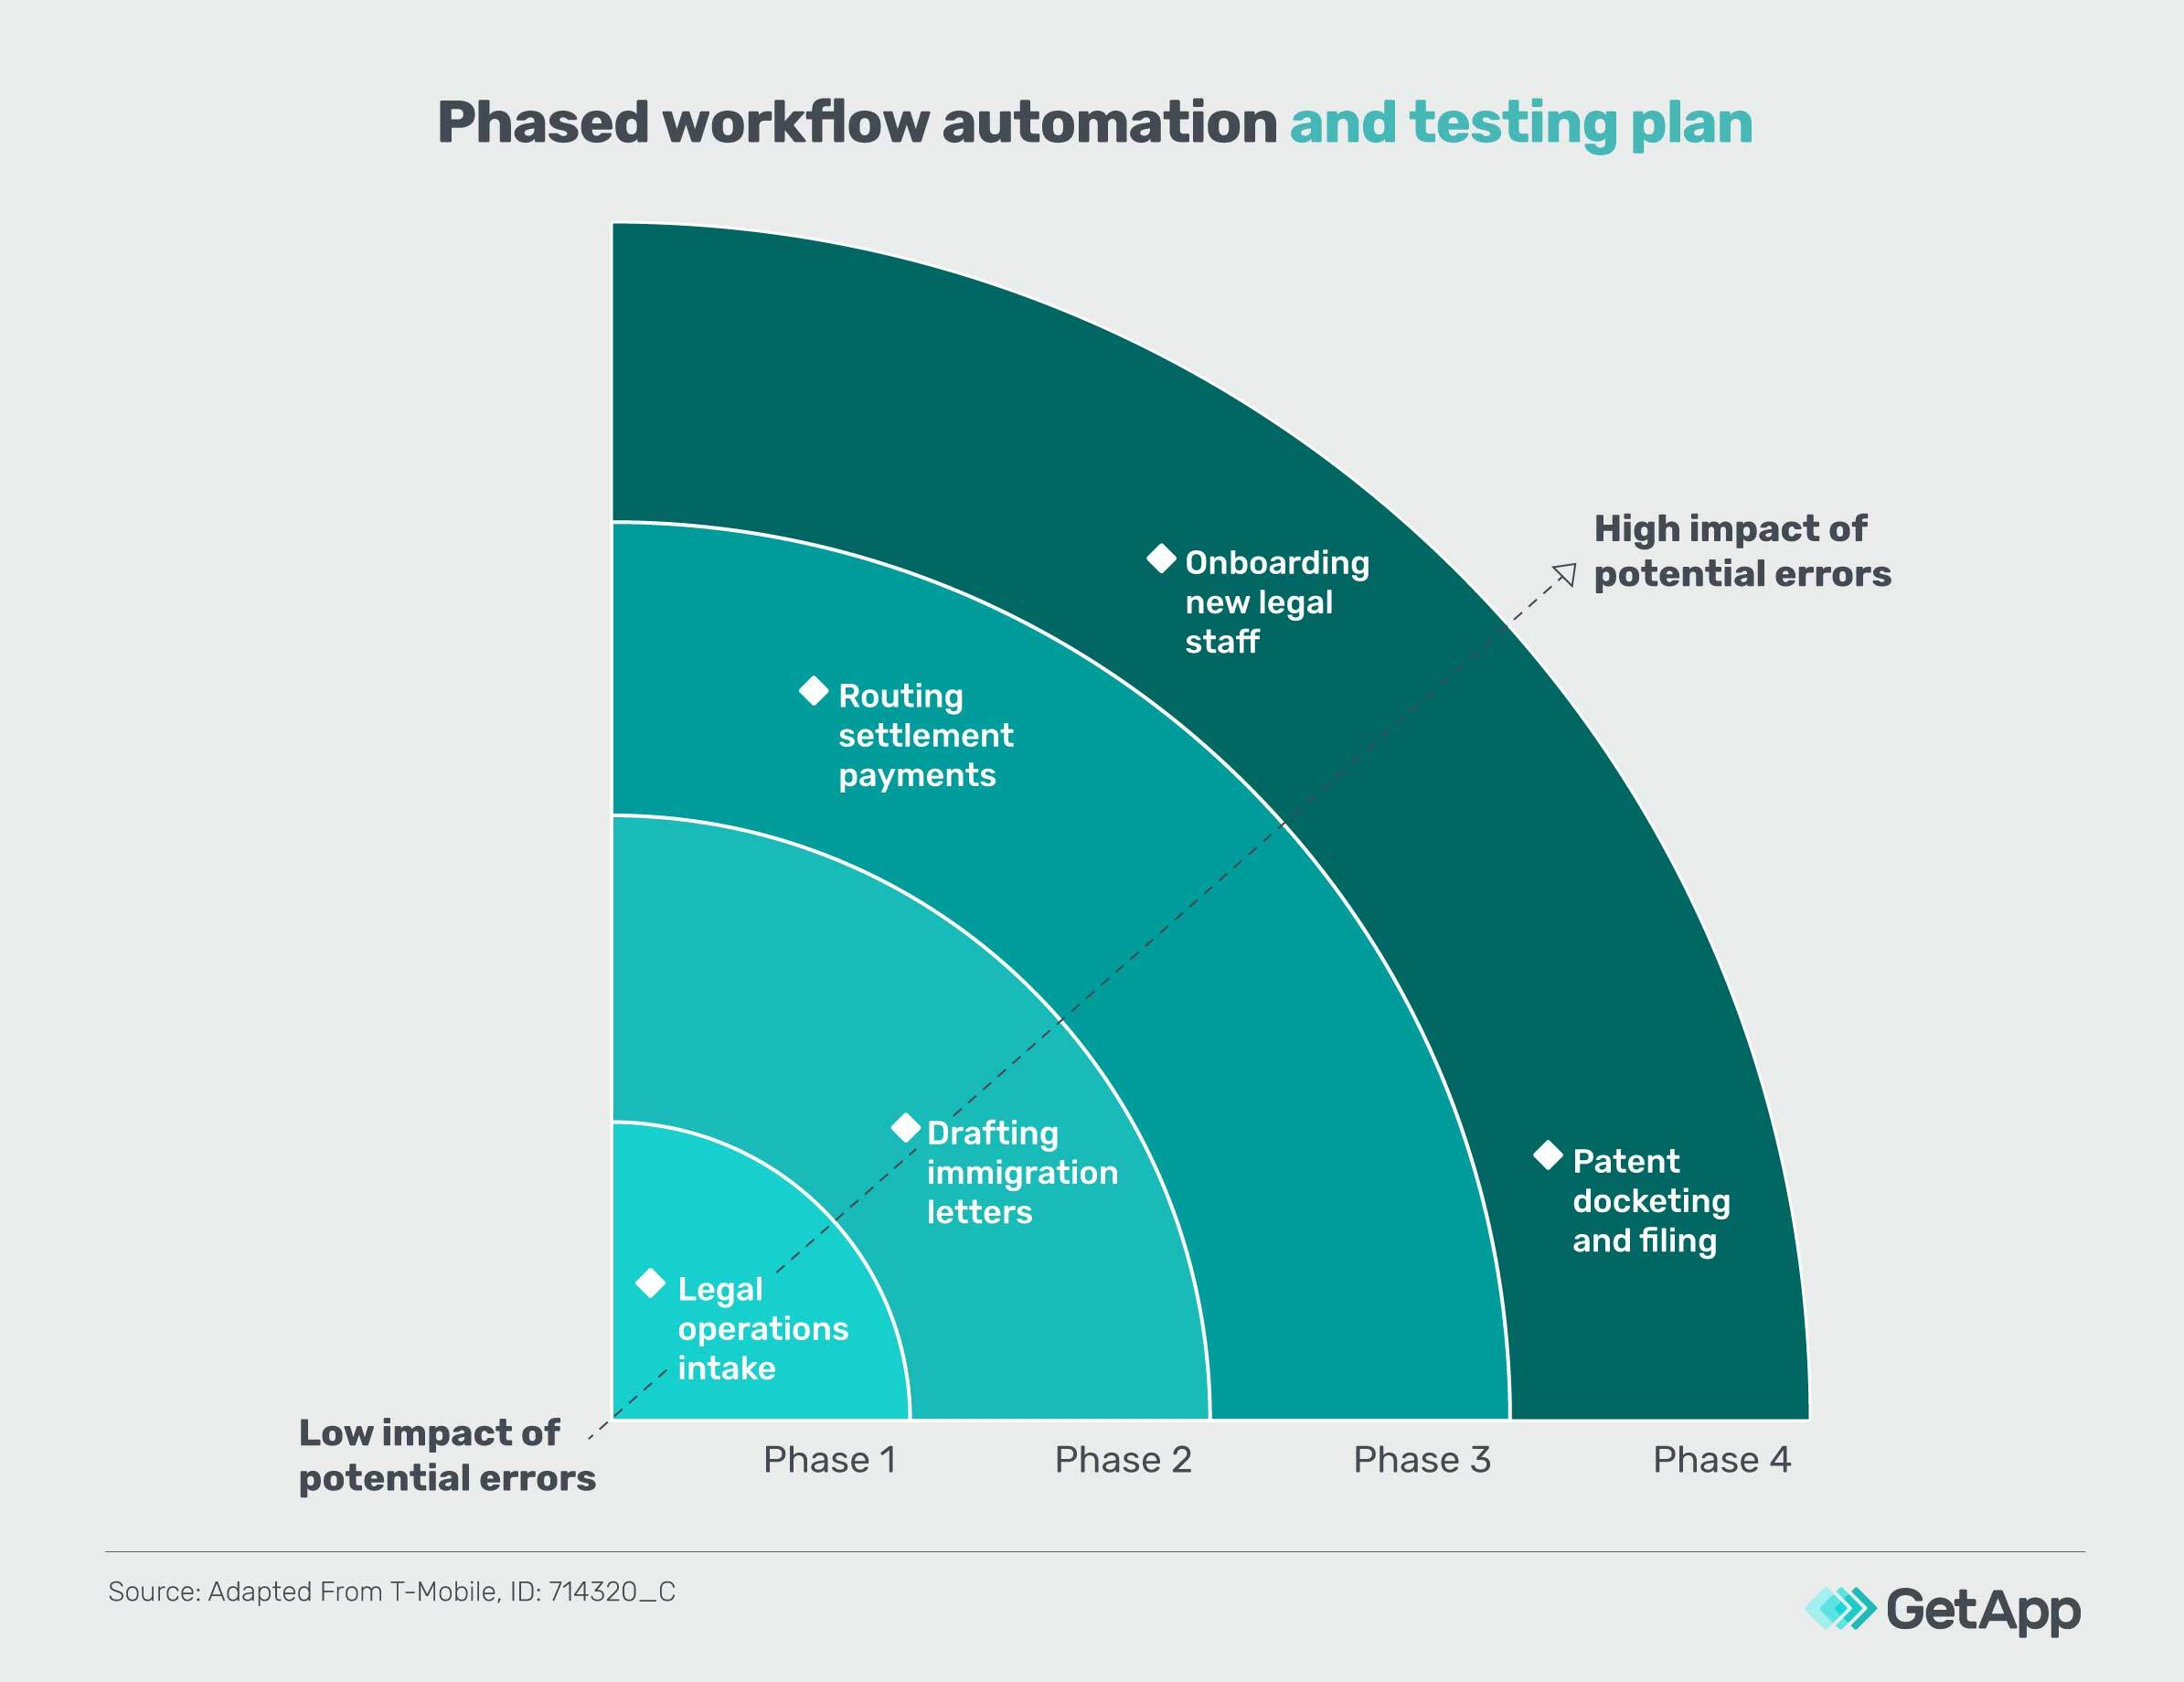 Phased workflow automation and testing plan